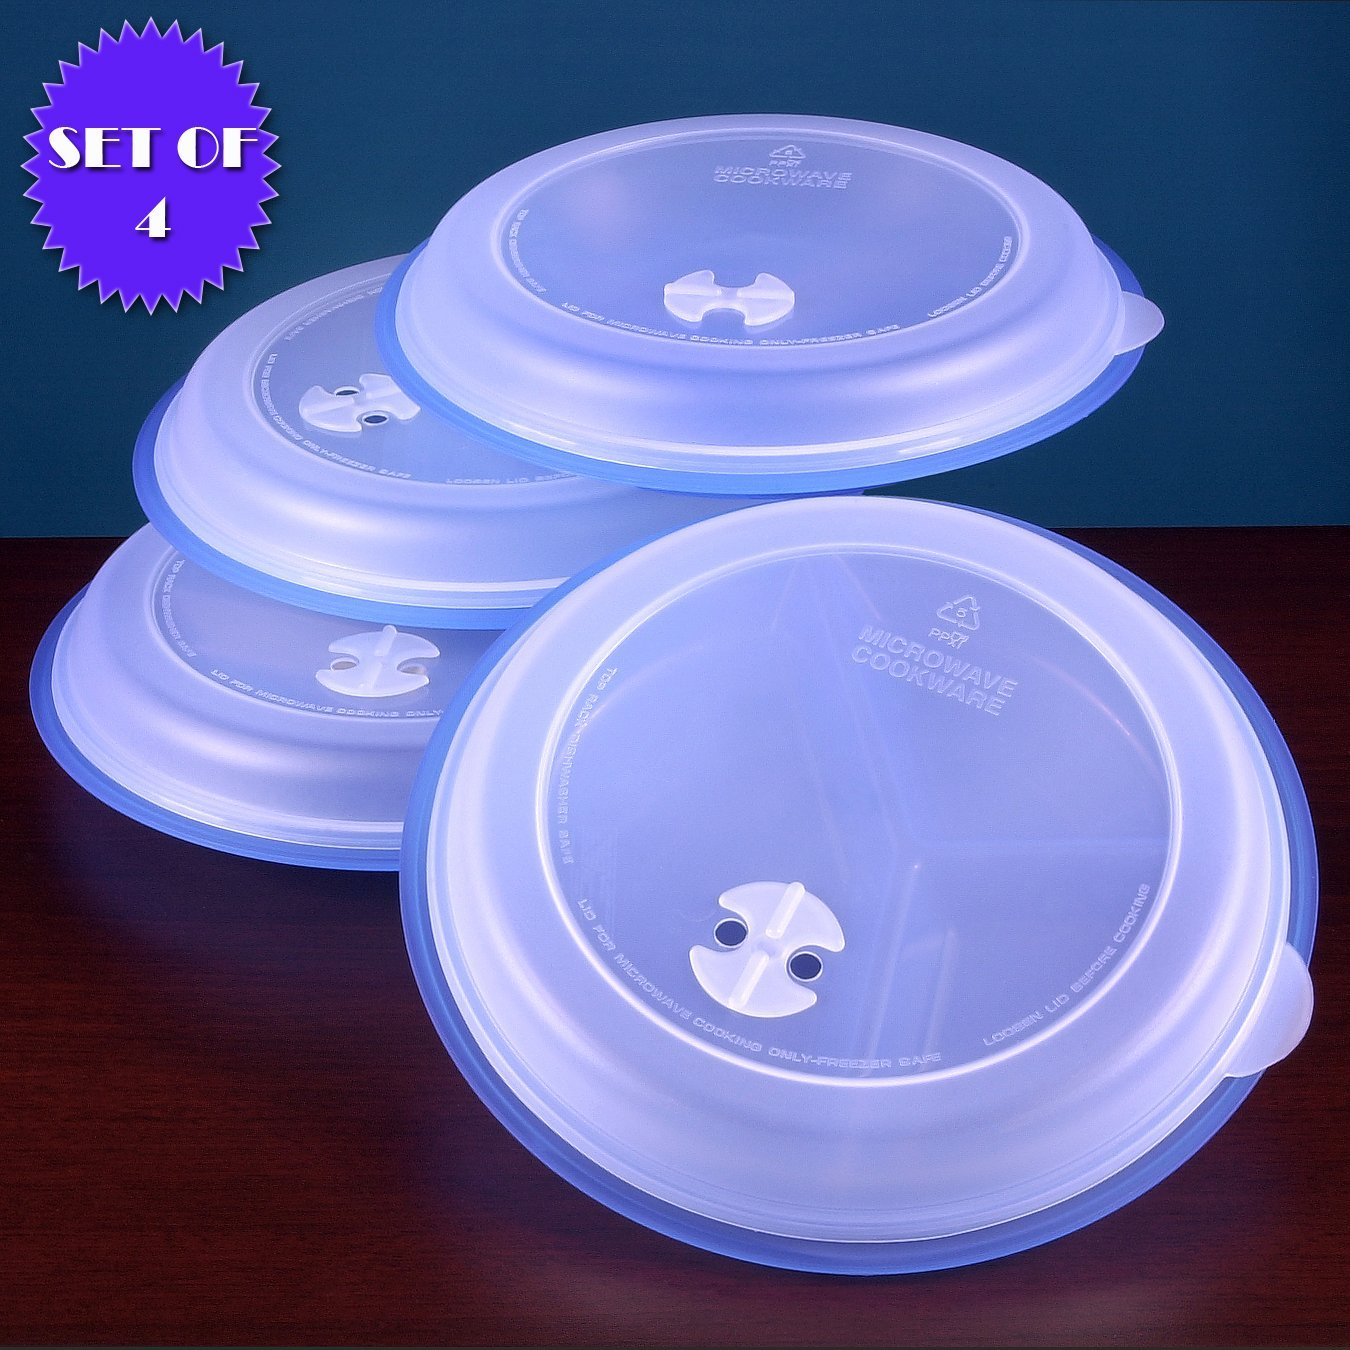 sc 1 st  Walmart & MICROWAVE DIVIDED PLATES WITH VENTED LIDS (Set of 4 blue) - Walmart.com